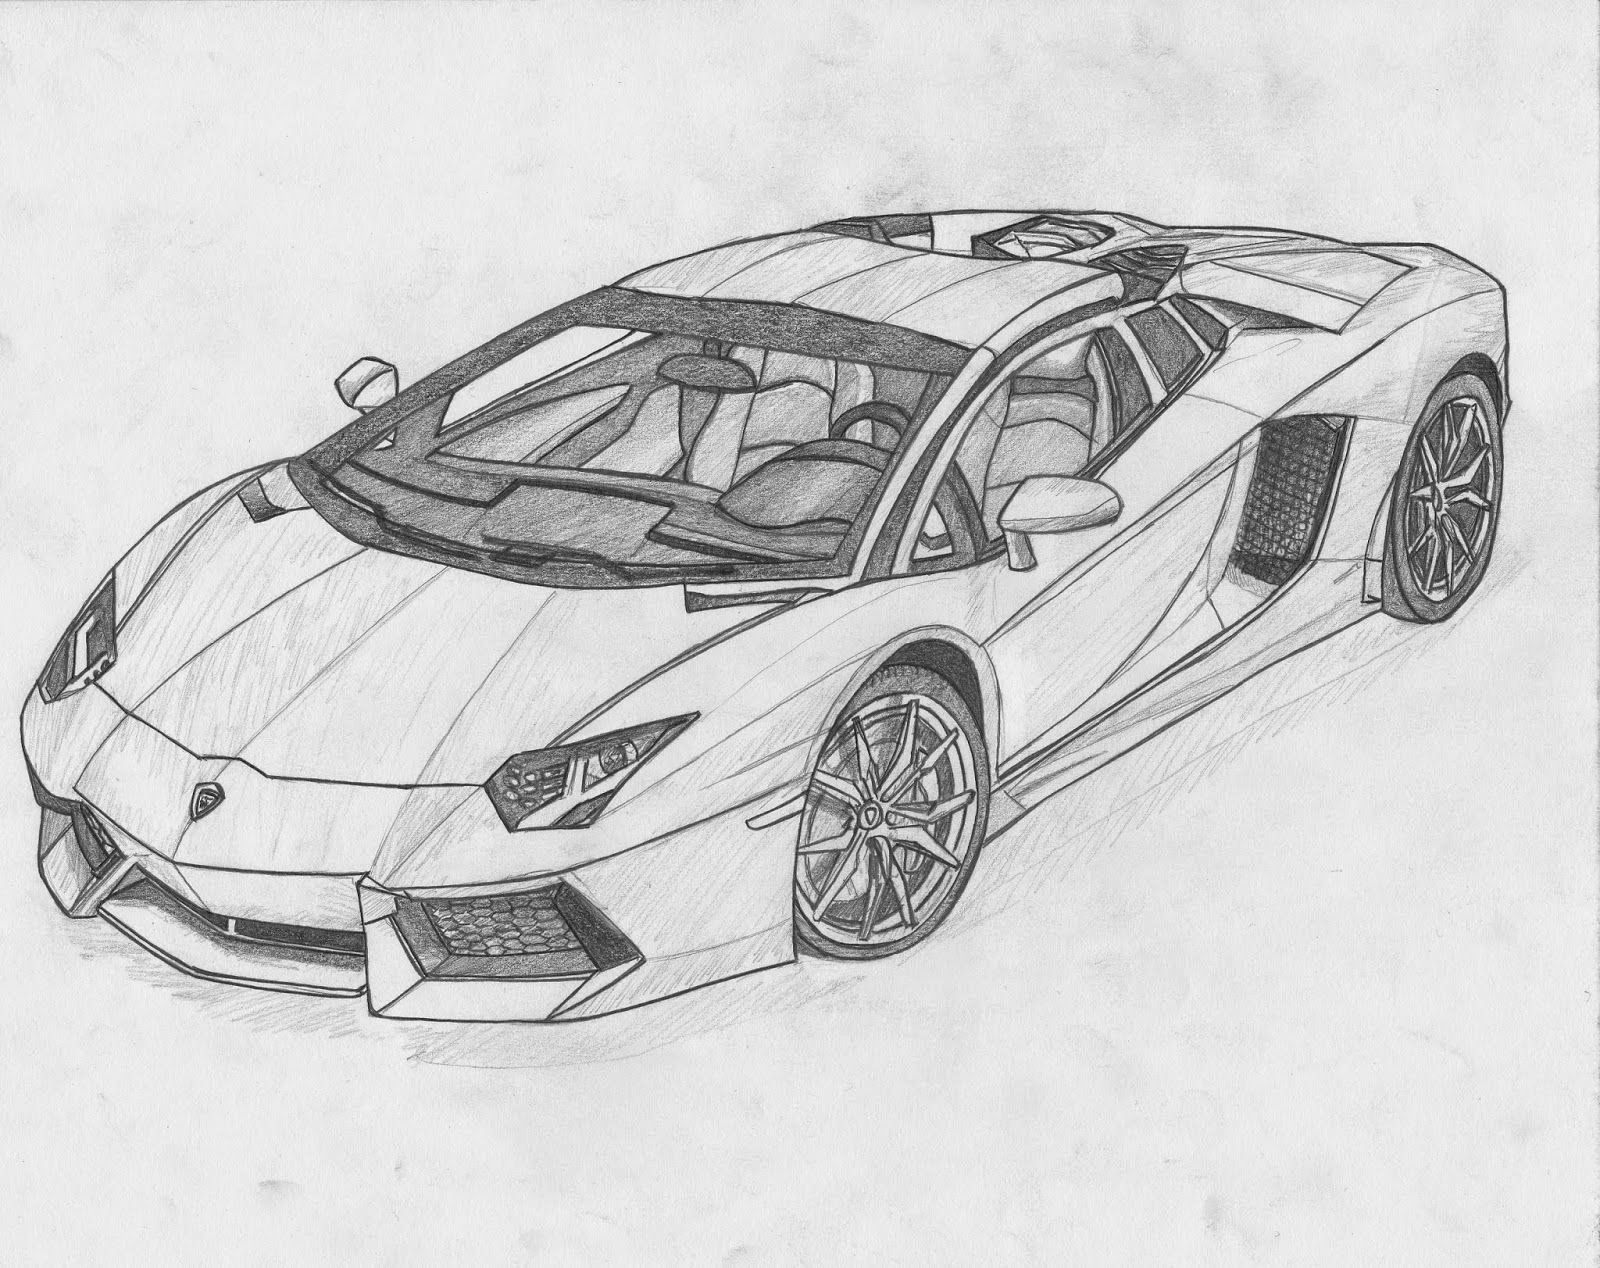 3d Object Pencil Drawing Book Pdf Lovely Image For Lamborghini Aventador Black And White Drawing In 2020 Cool Car Drawings Car Drawings Car Drawing Pencil